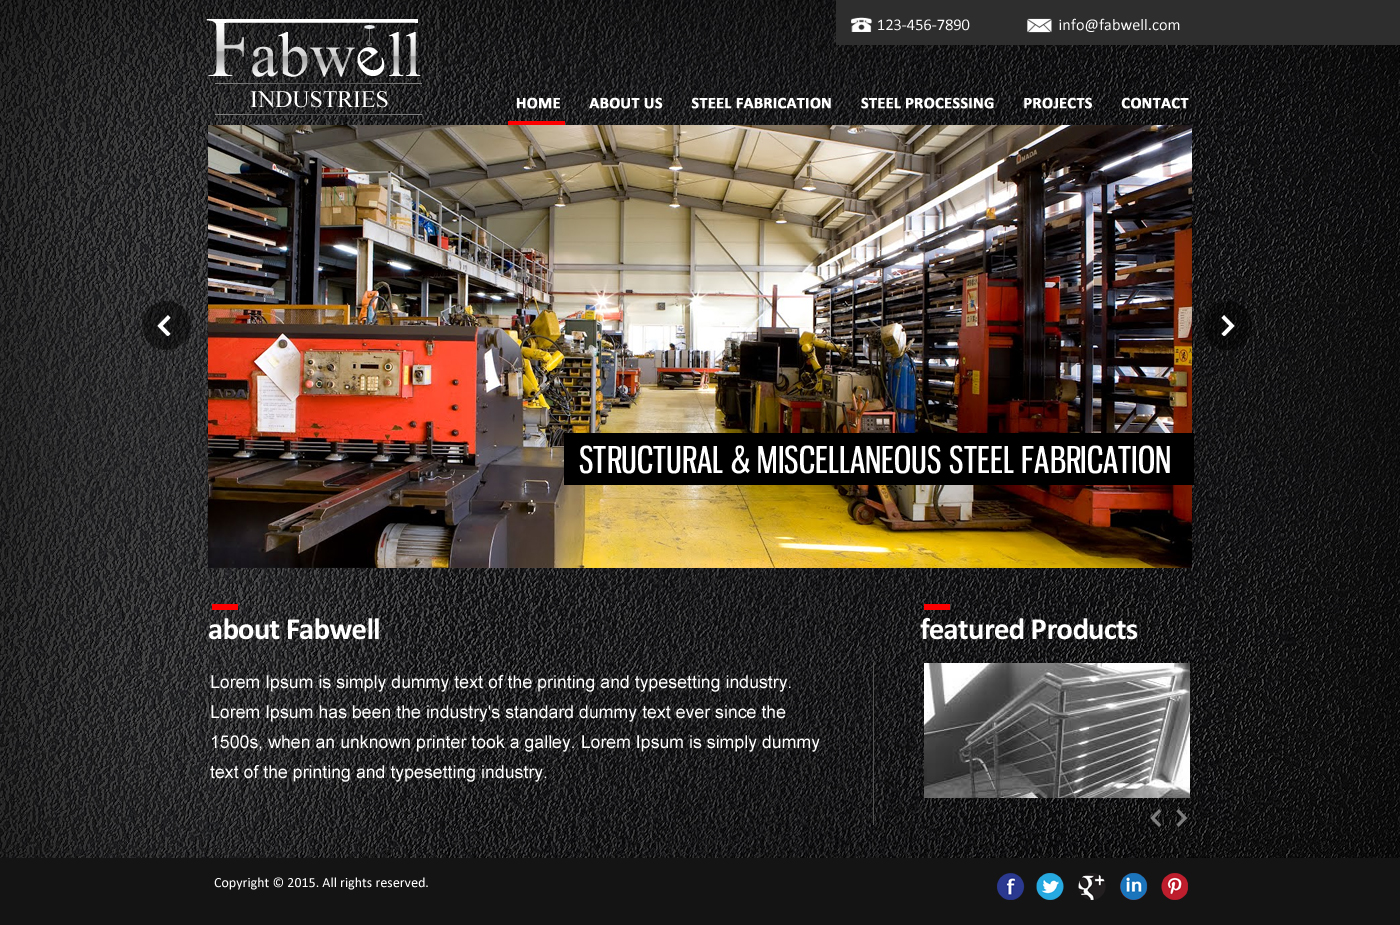 Web Page Design by webexprtz - Entry No. 14 in the Web Page Design Contest Captivating Web Page Design for Fabwell Industries Inc..